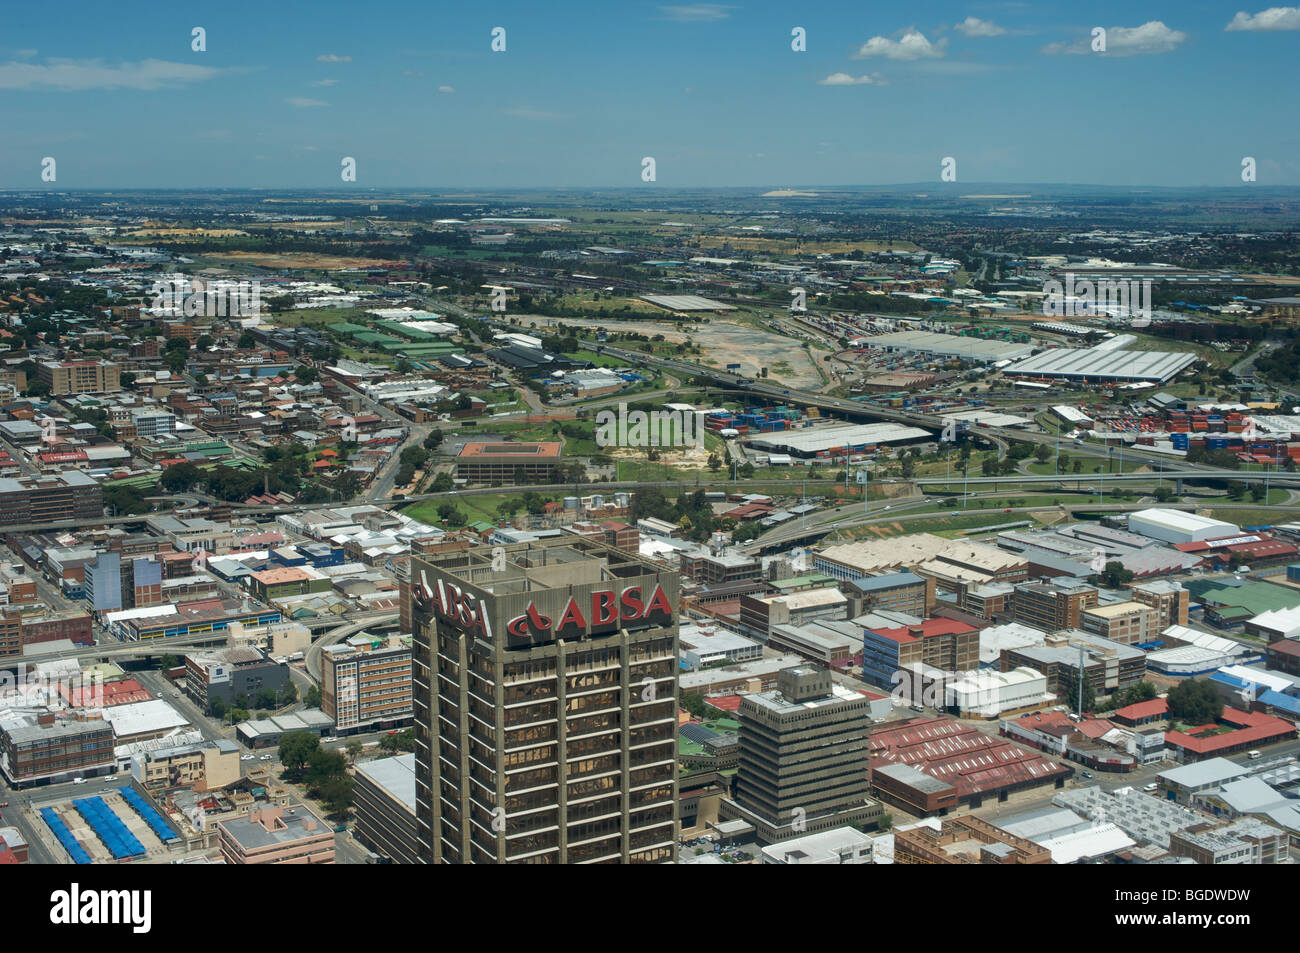 South-East view from top of Carlton Centre, Johannesburg, South Africa, of downtown Johannesburg - Stock Image